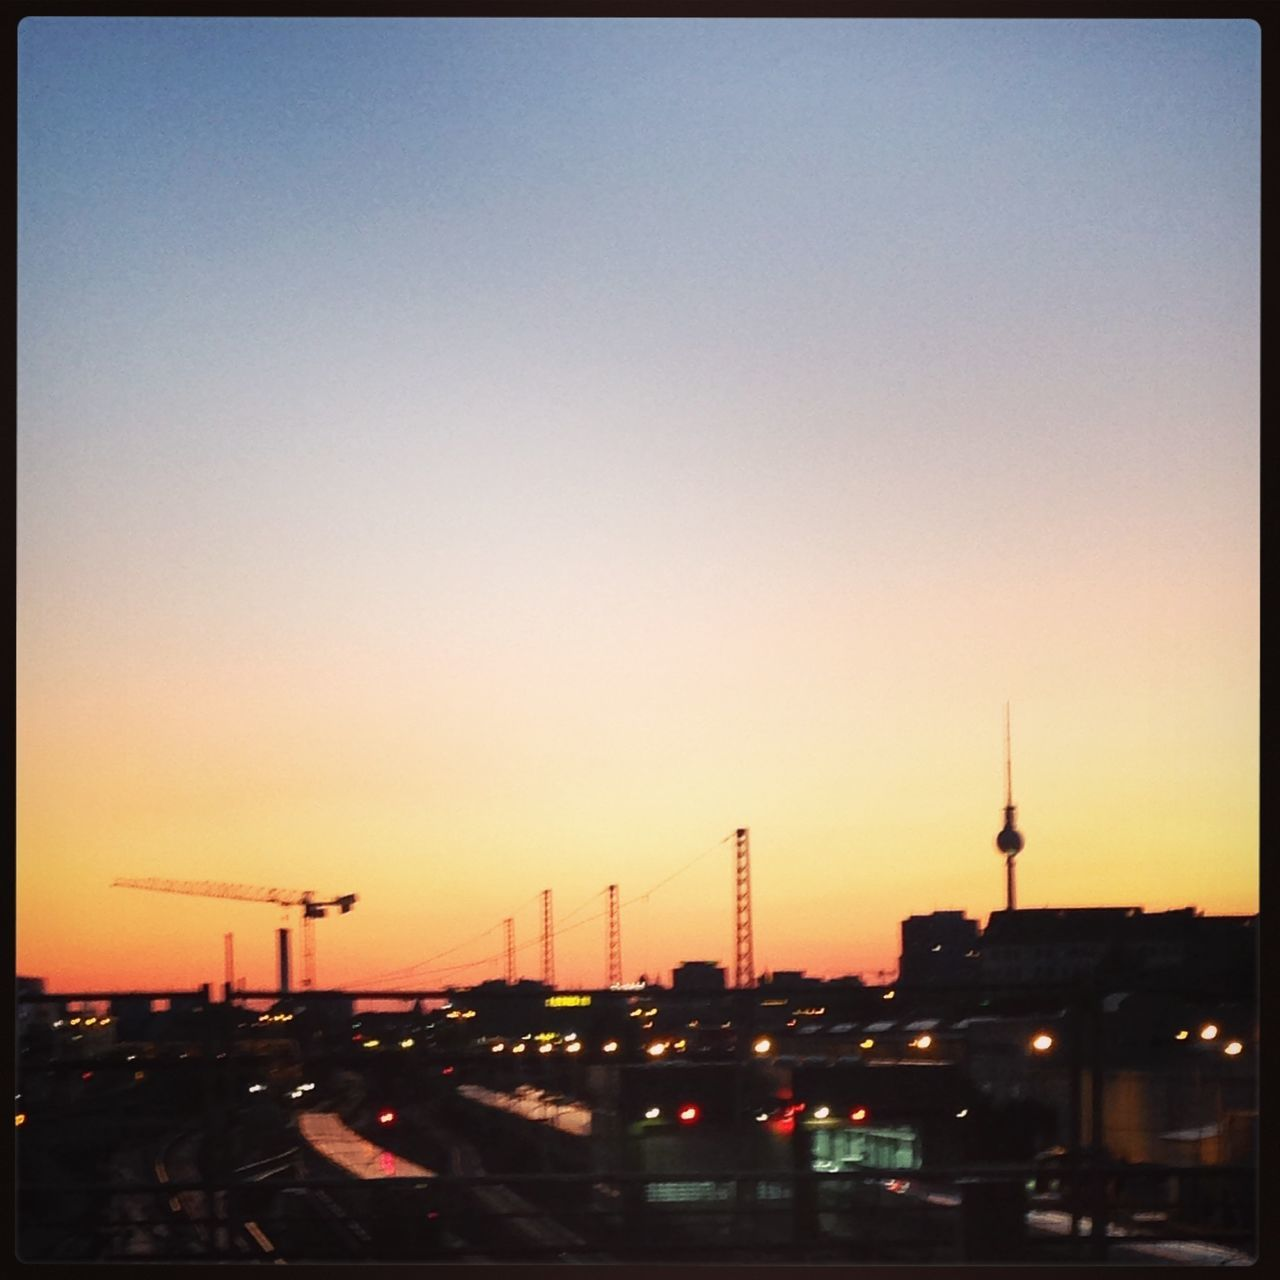 Architecture Berliner Ansichten Building Exterior Built Structure City City Life Cityscape Clear Sky Copy Space Crane Day Fernsehturm No People Oberbaumbrücke Outdoors Panorama Road Sky Skyline Sunset Sunset_collection Tower Transportation Travel Warschauerbrücke